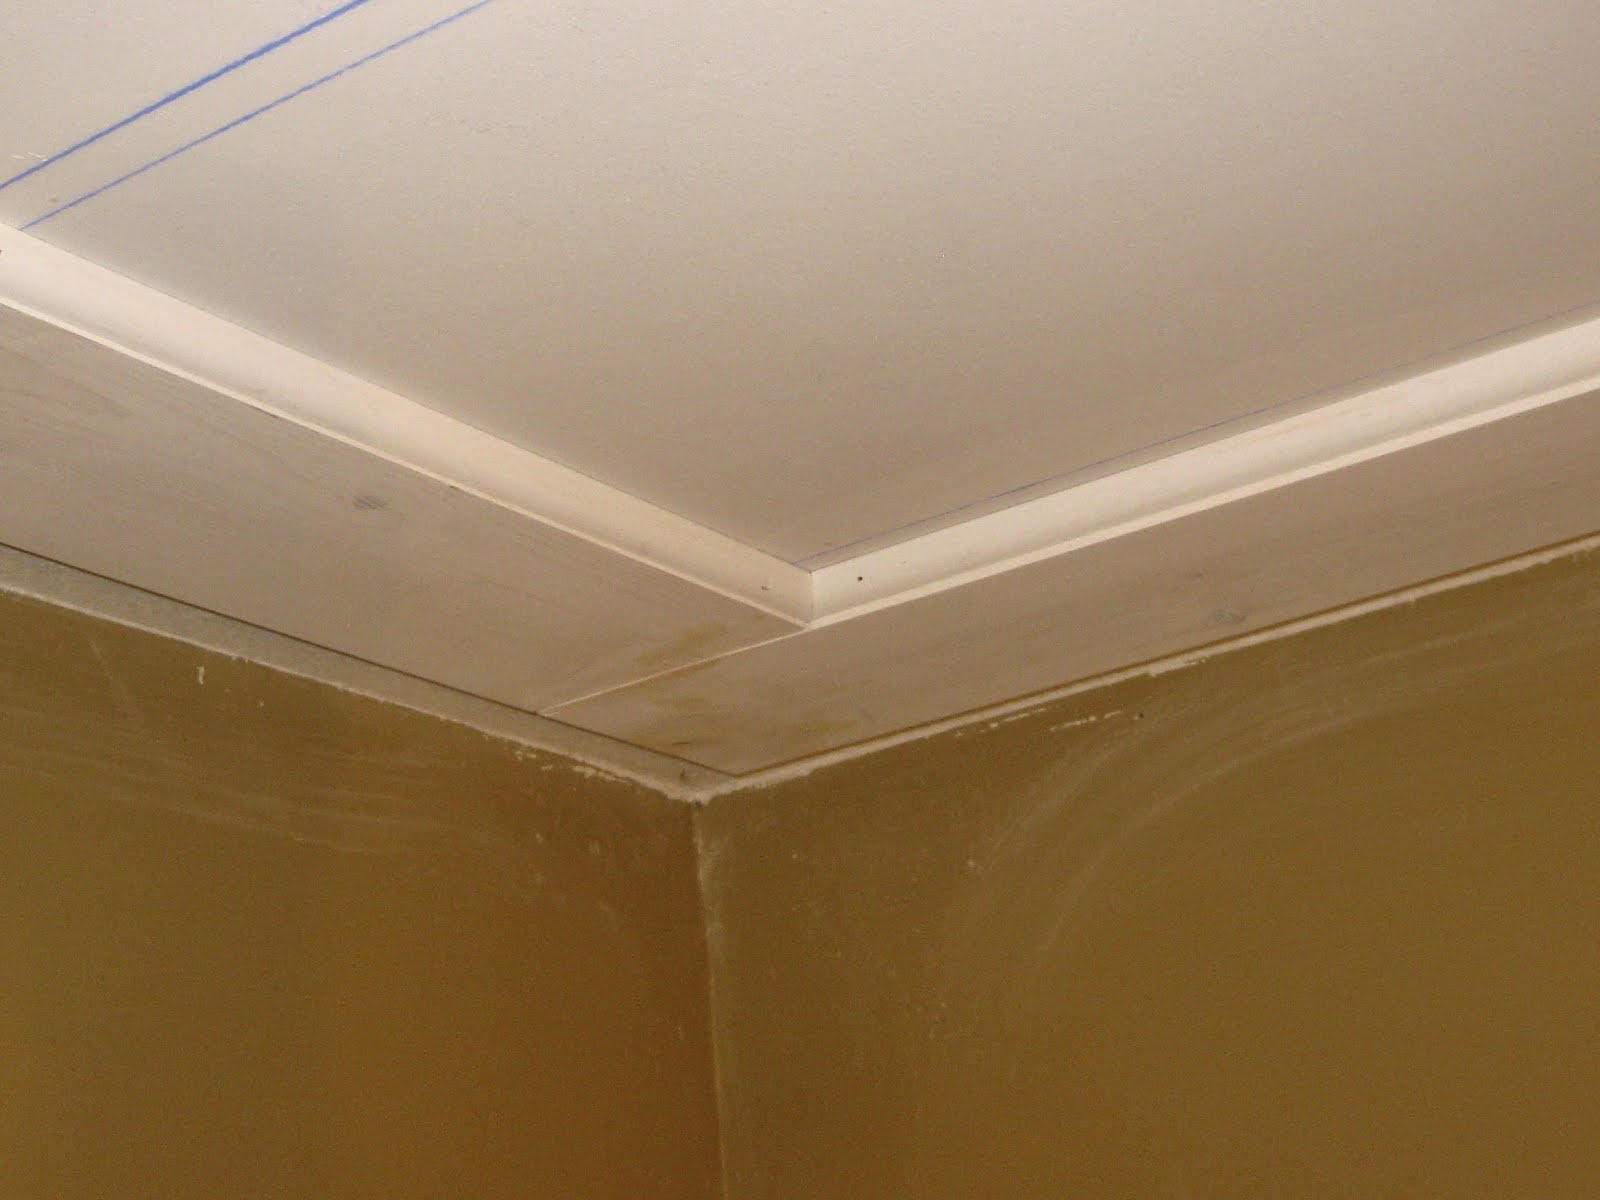 Ceiling trim, Ceilings and Flats on Pinterest